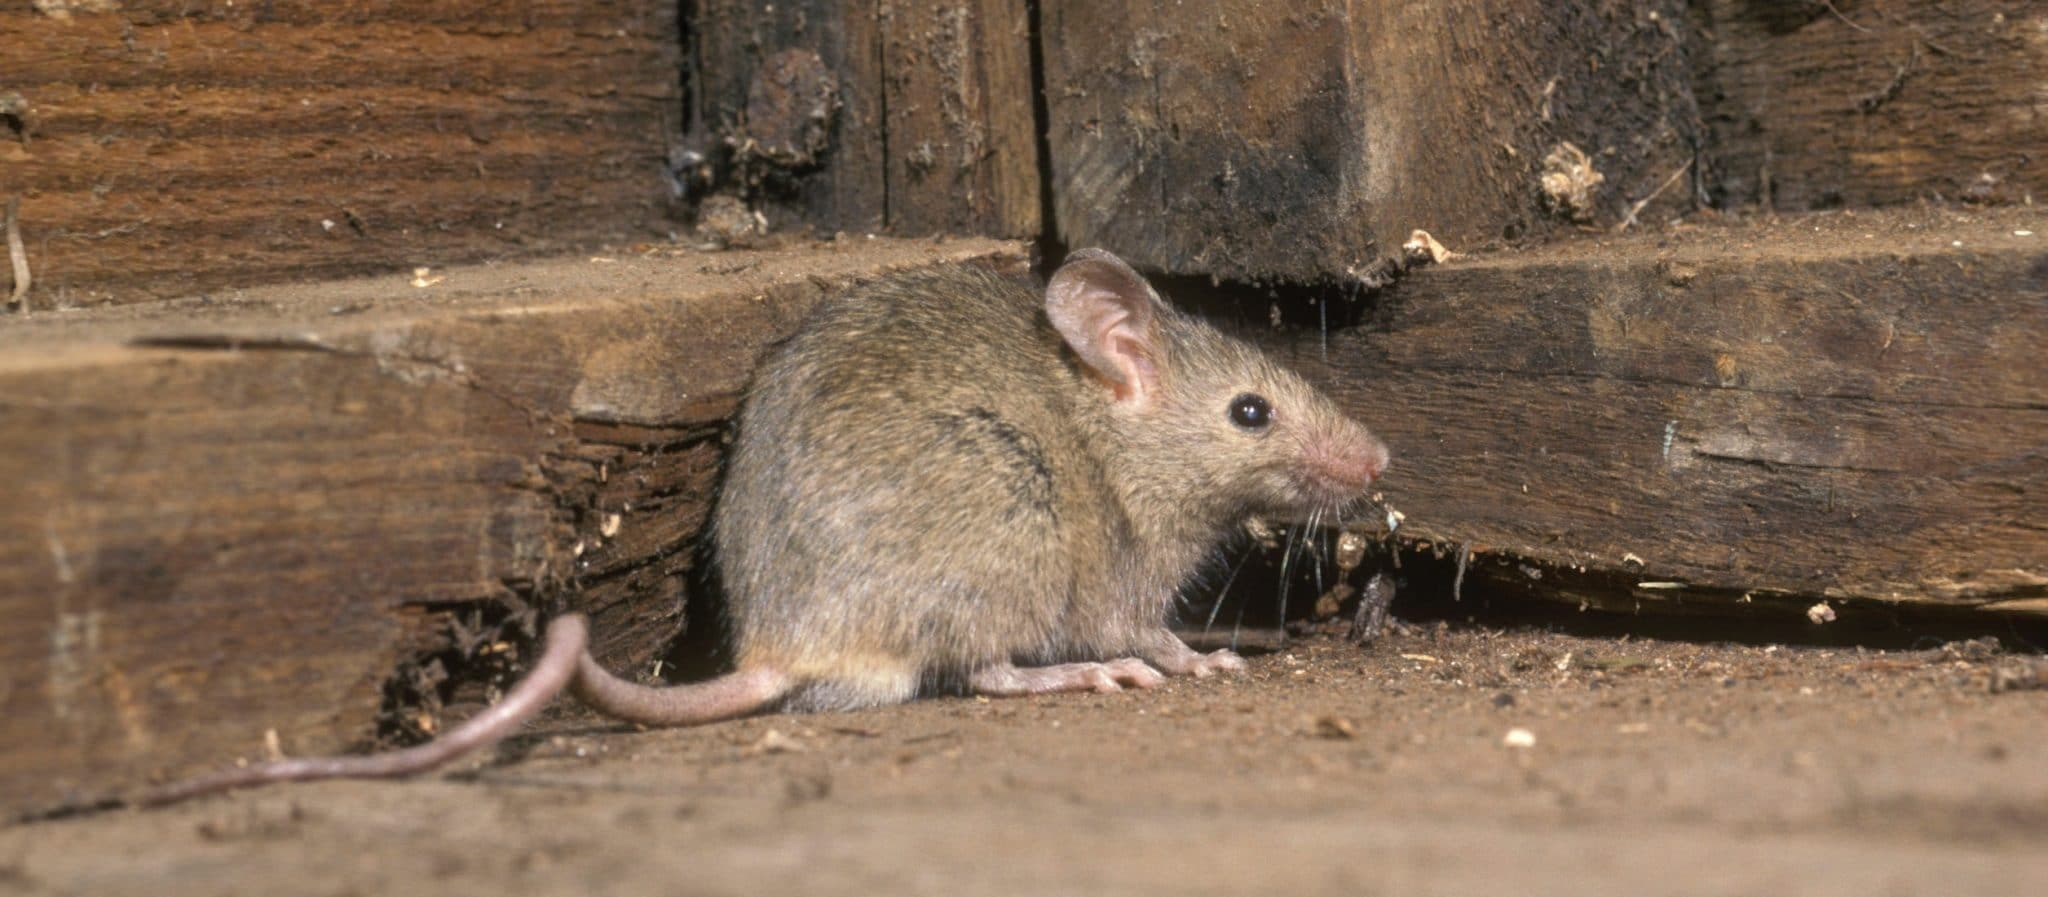 Mouse inside a residential structure